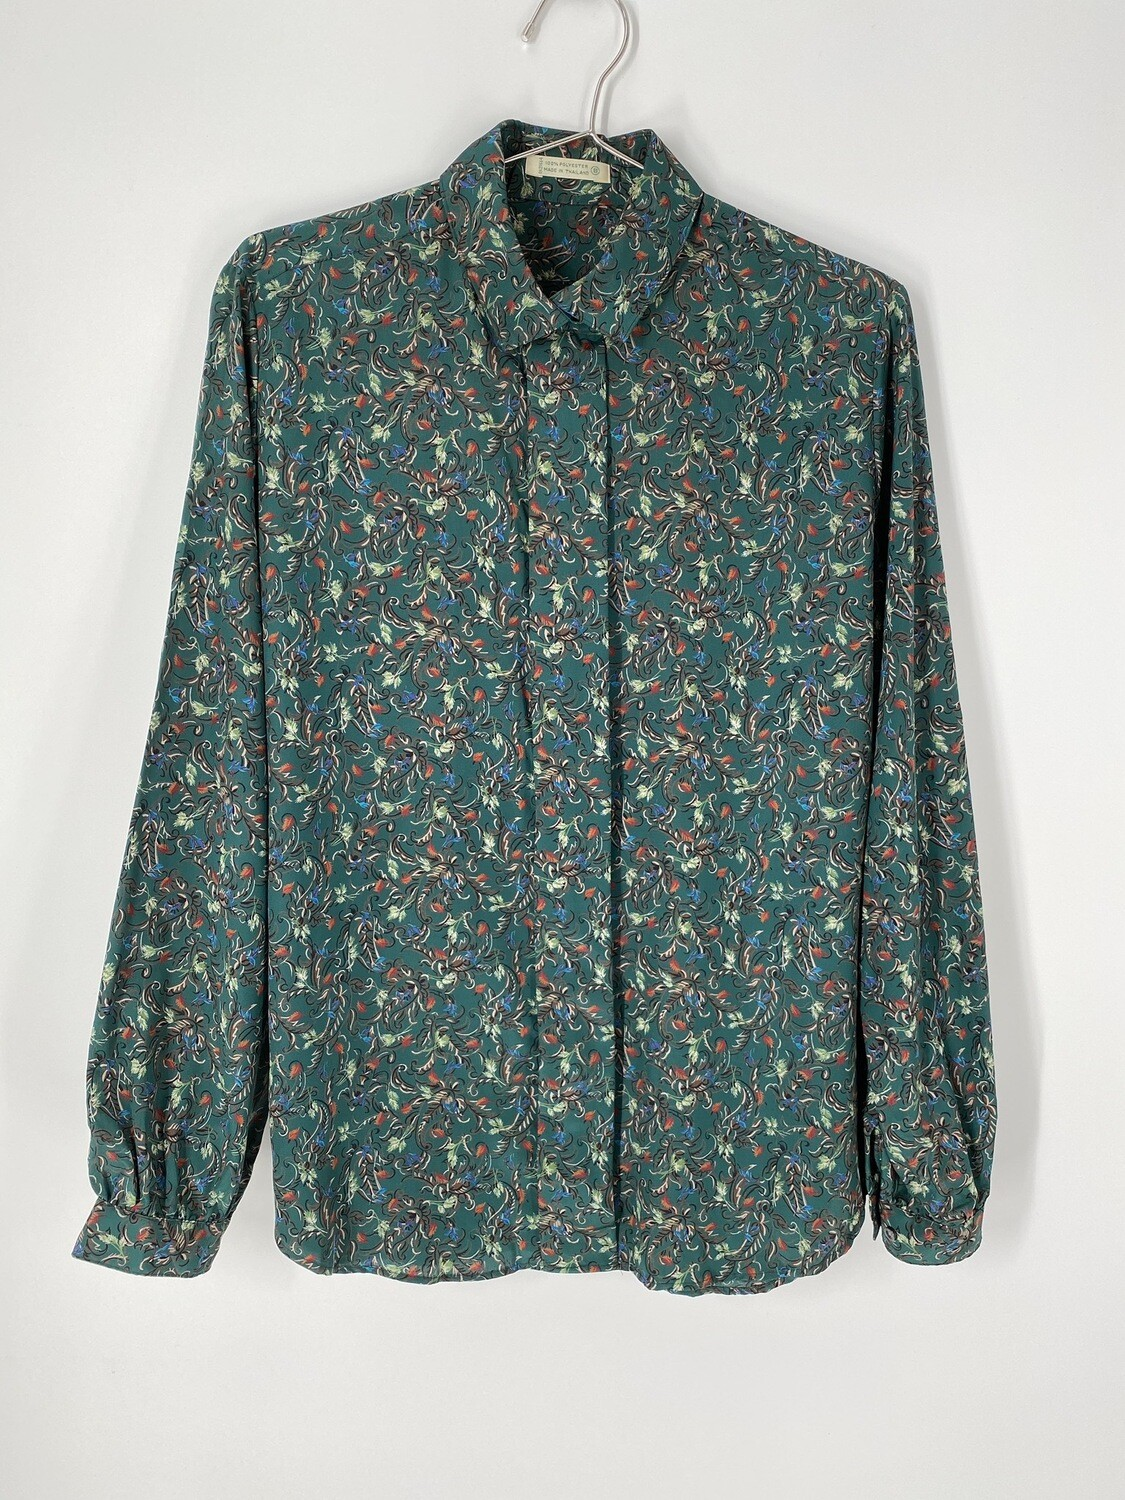 Forest Green Paisley Button Up Size S